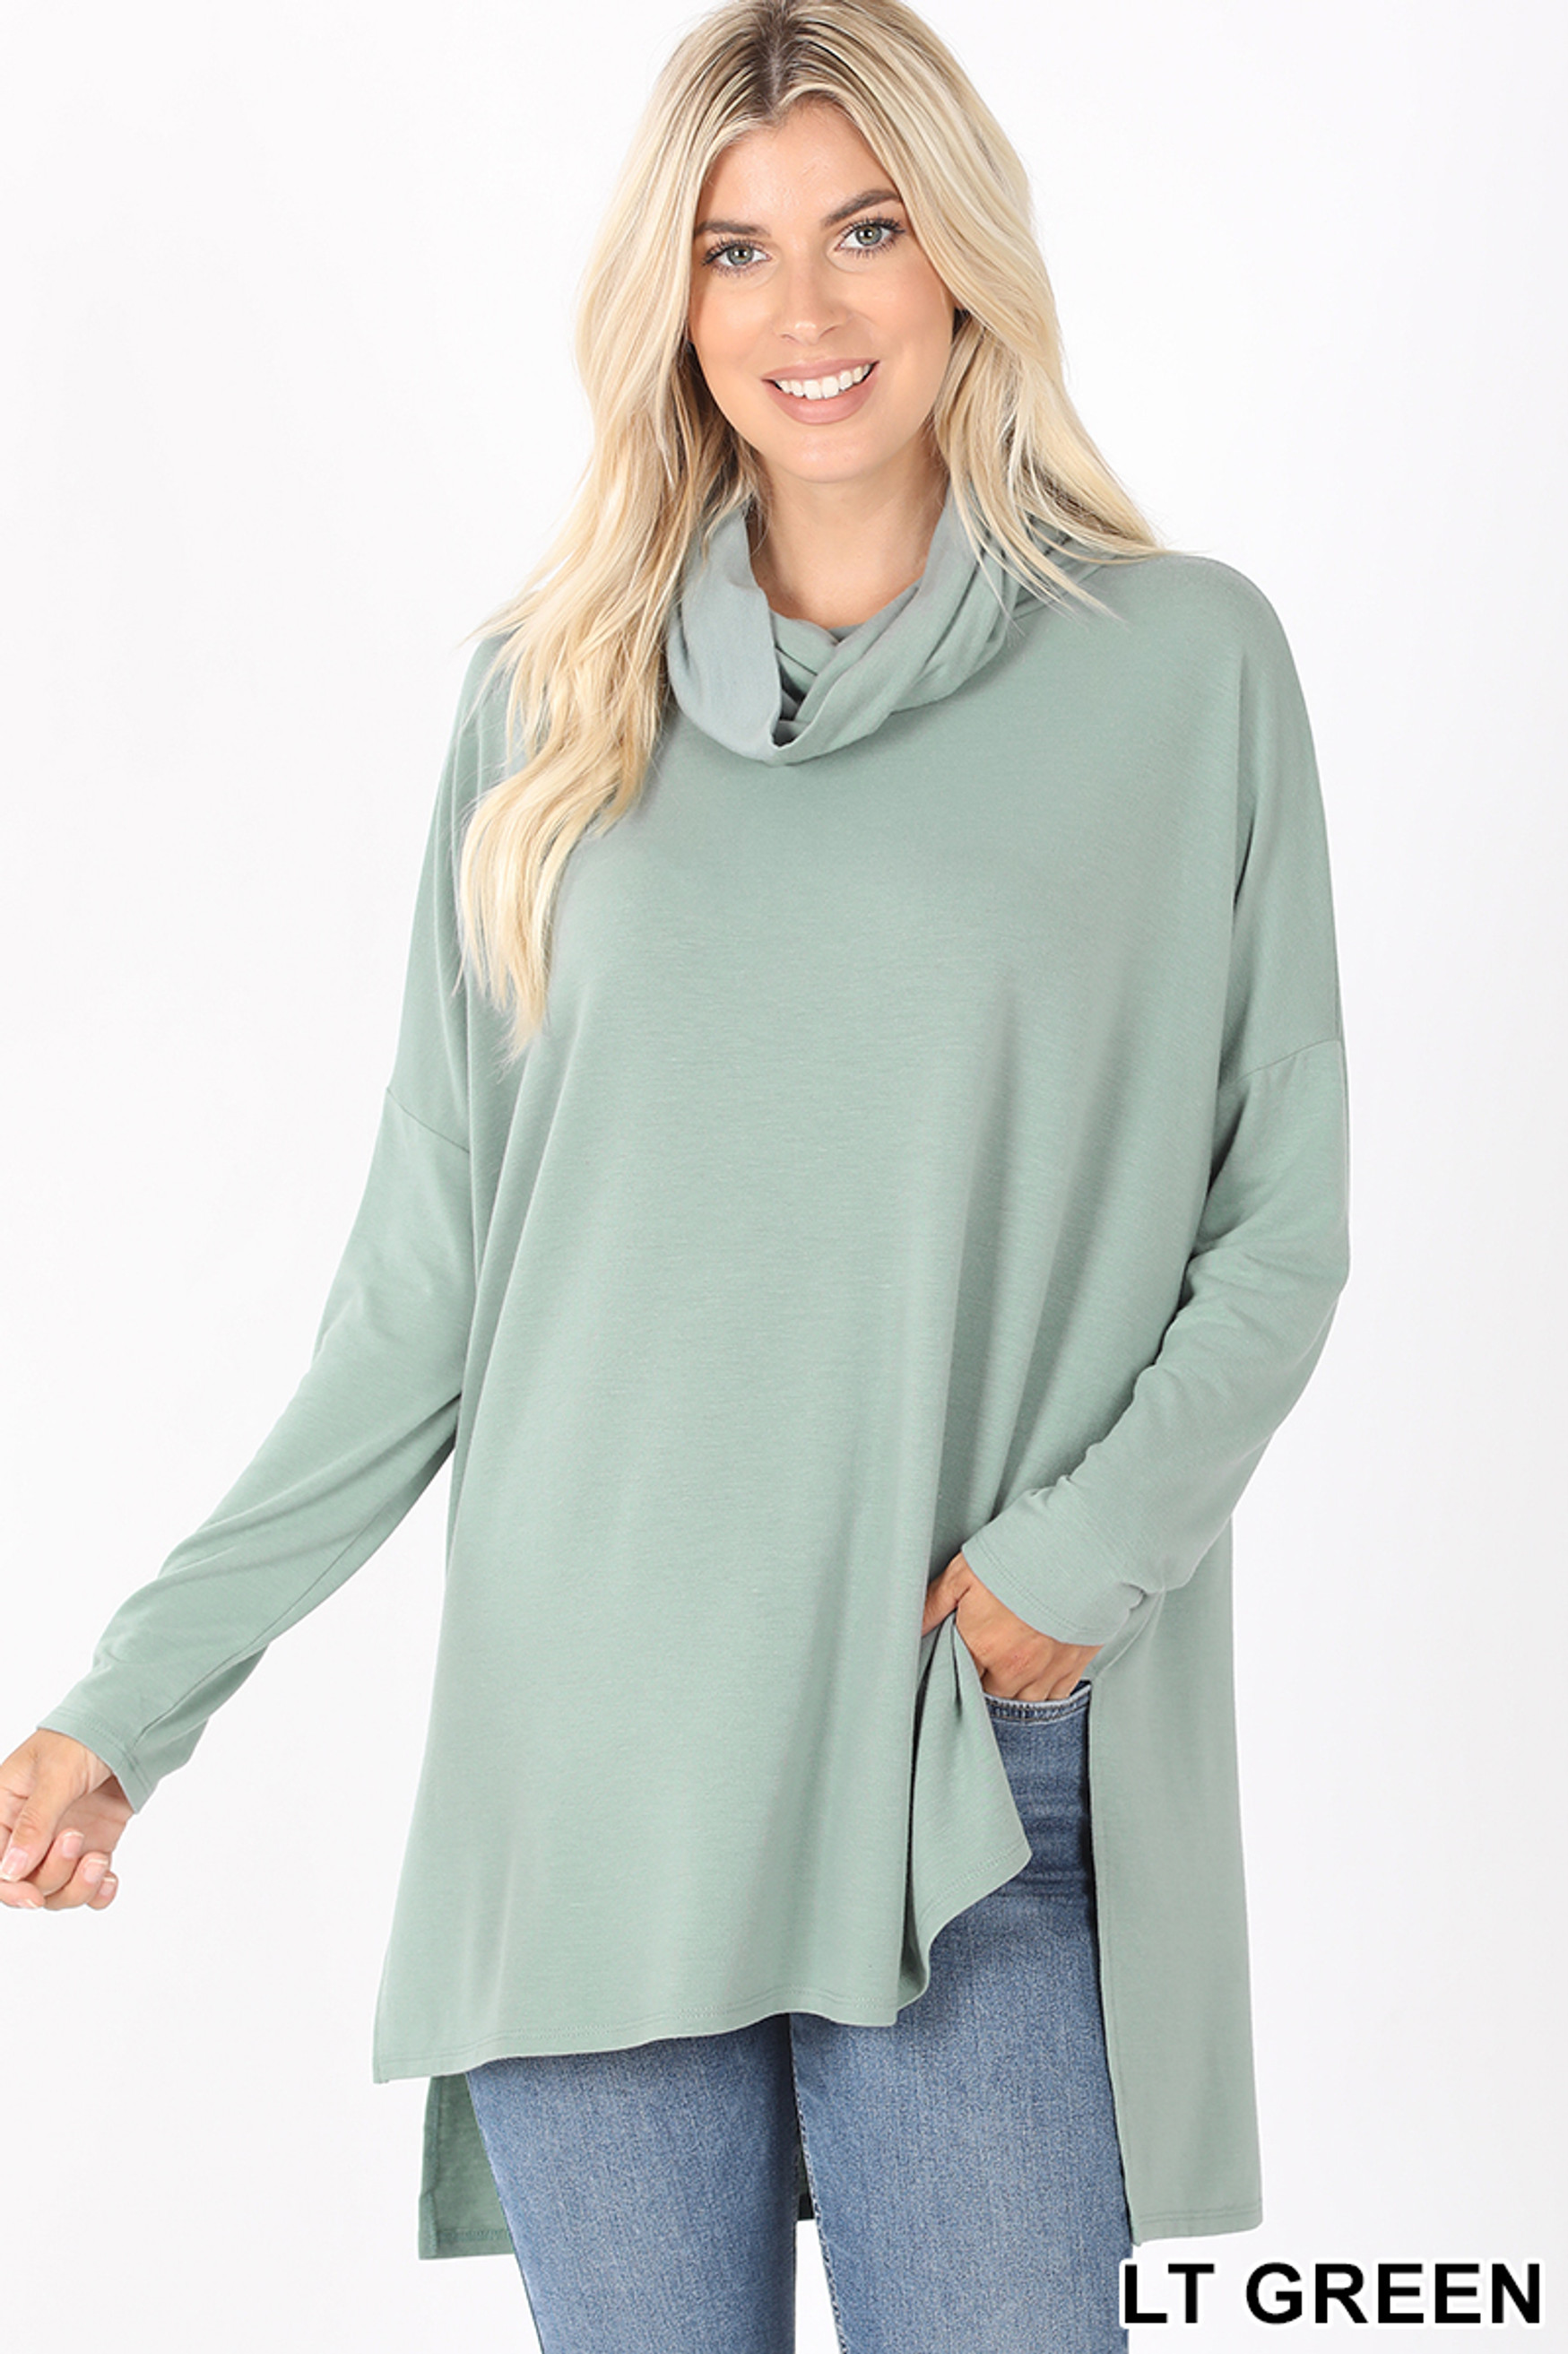 Front image of Light Green Cowl Neck Hi-Low Long Sleeve Plus Size Top